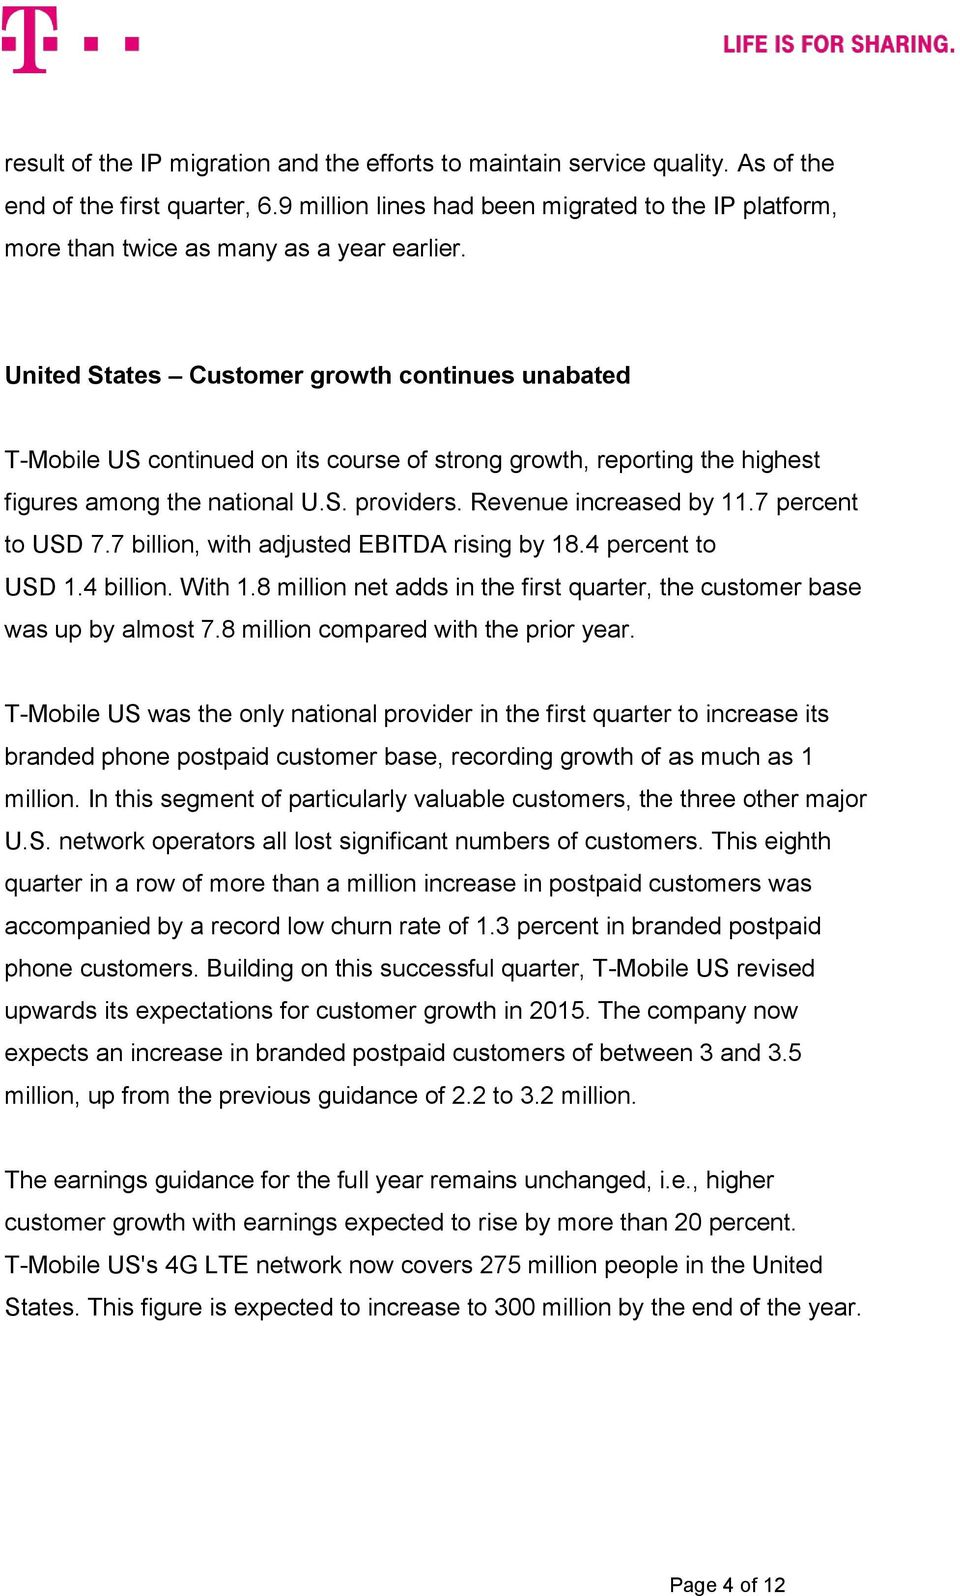 United States Customer growth continues unabated T-Mobile US continued on its course of strong growth, reporting the highest figures among the national U.S. providers. Revenue increased by 11.